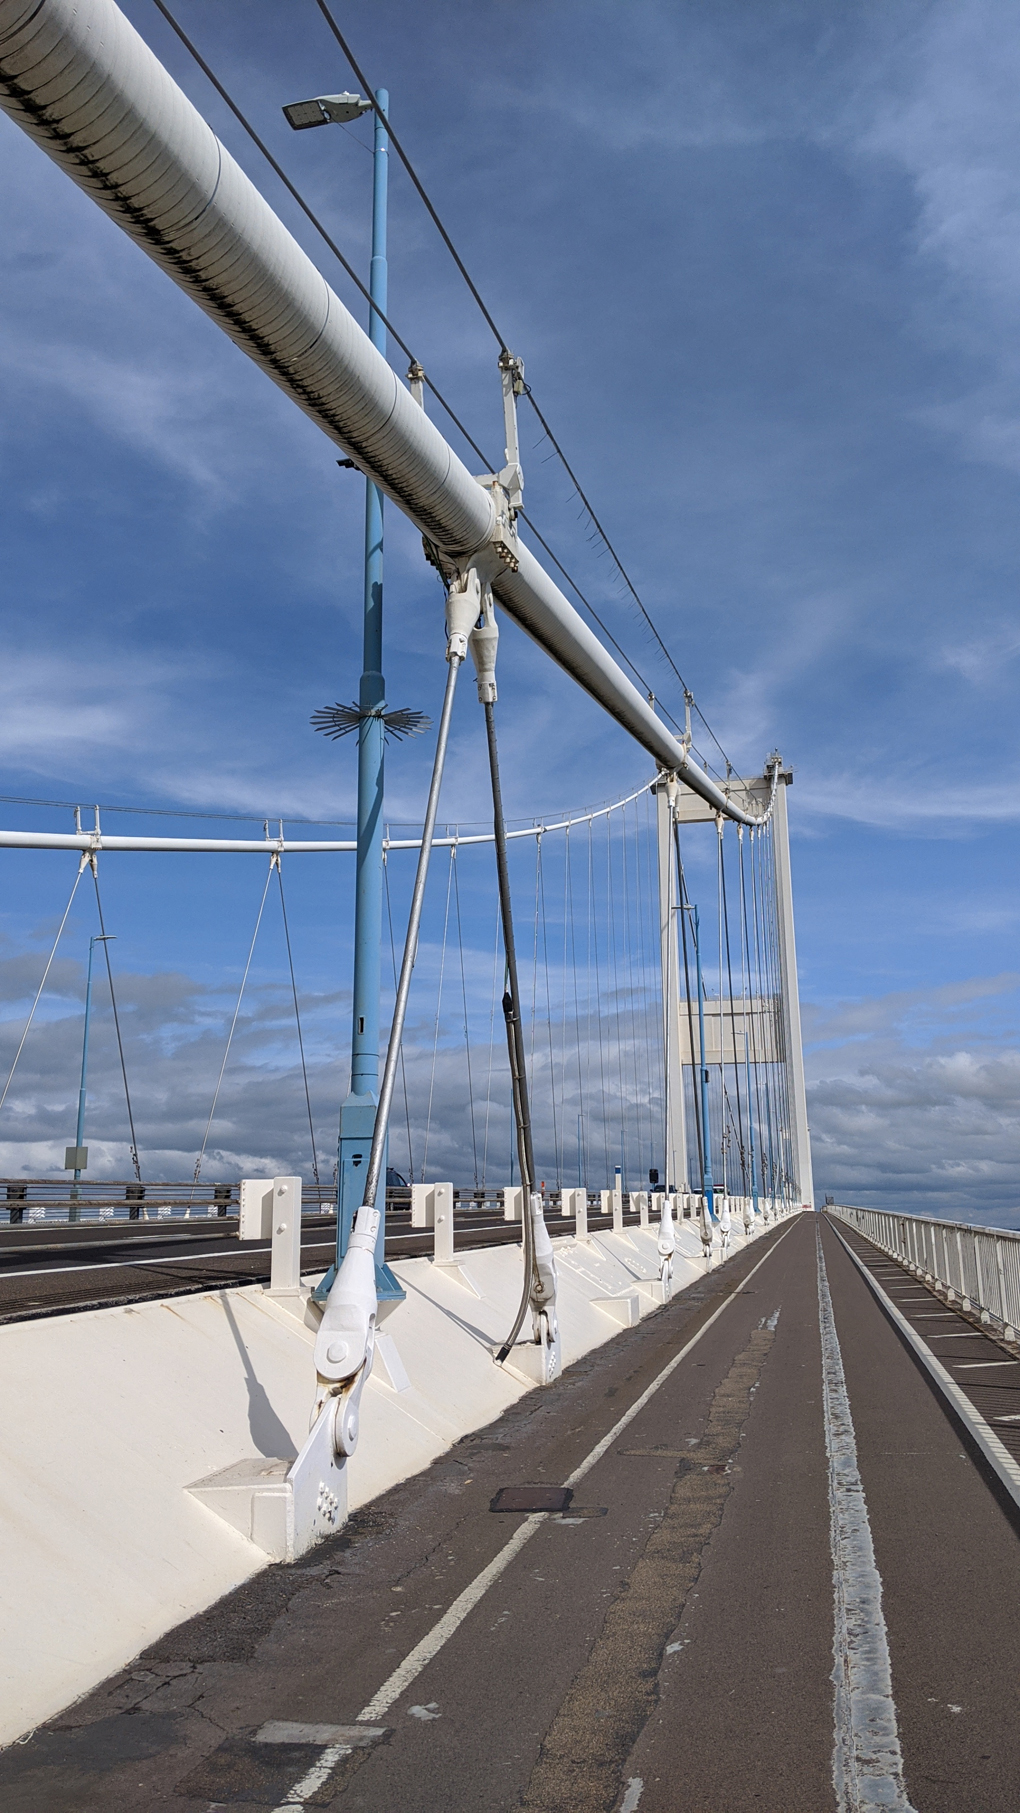 A photo taken on the walking-path of the Severn Bridge